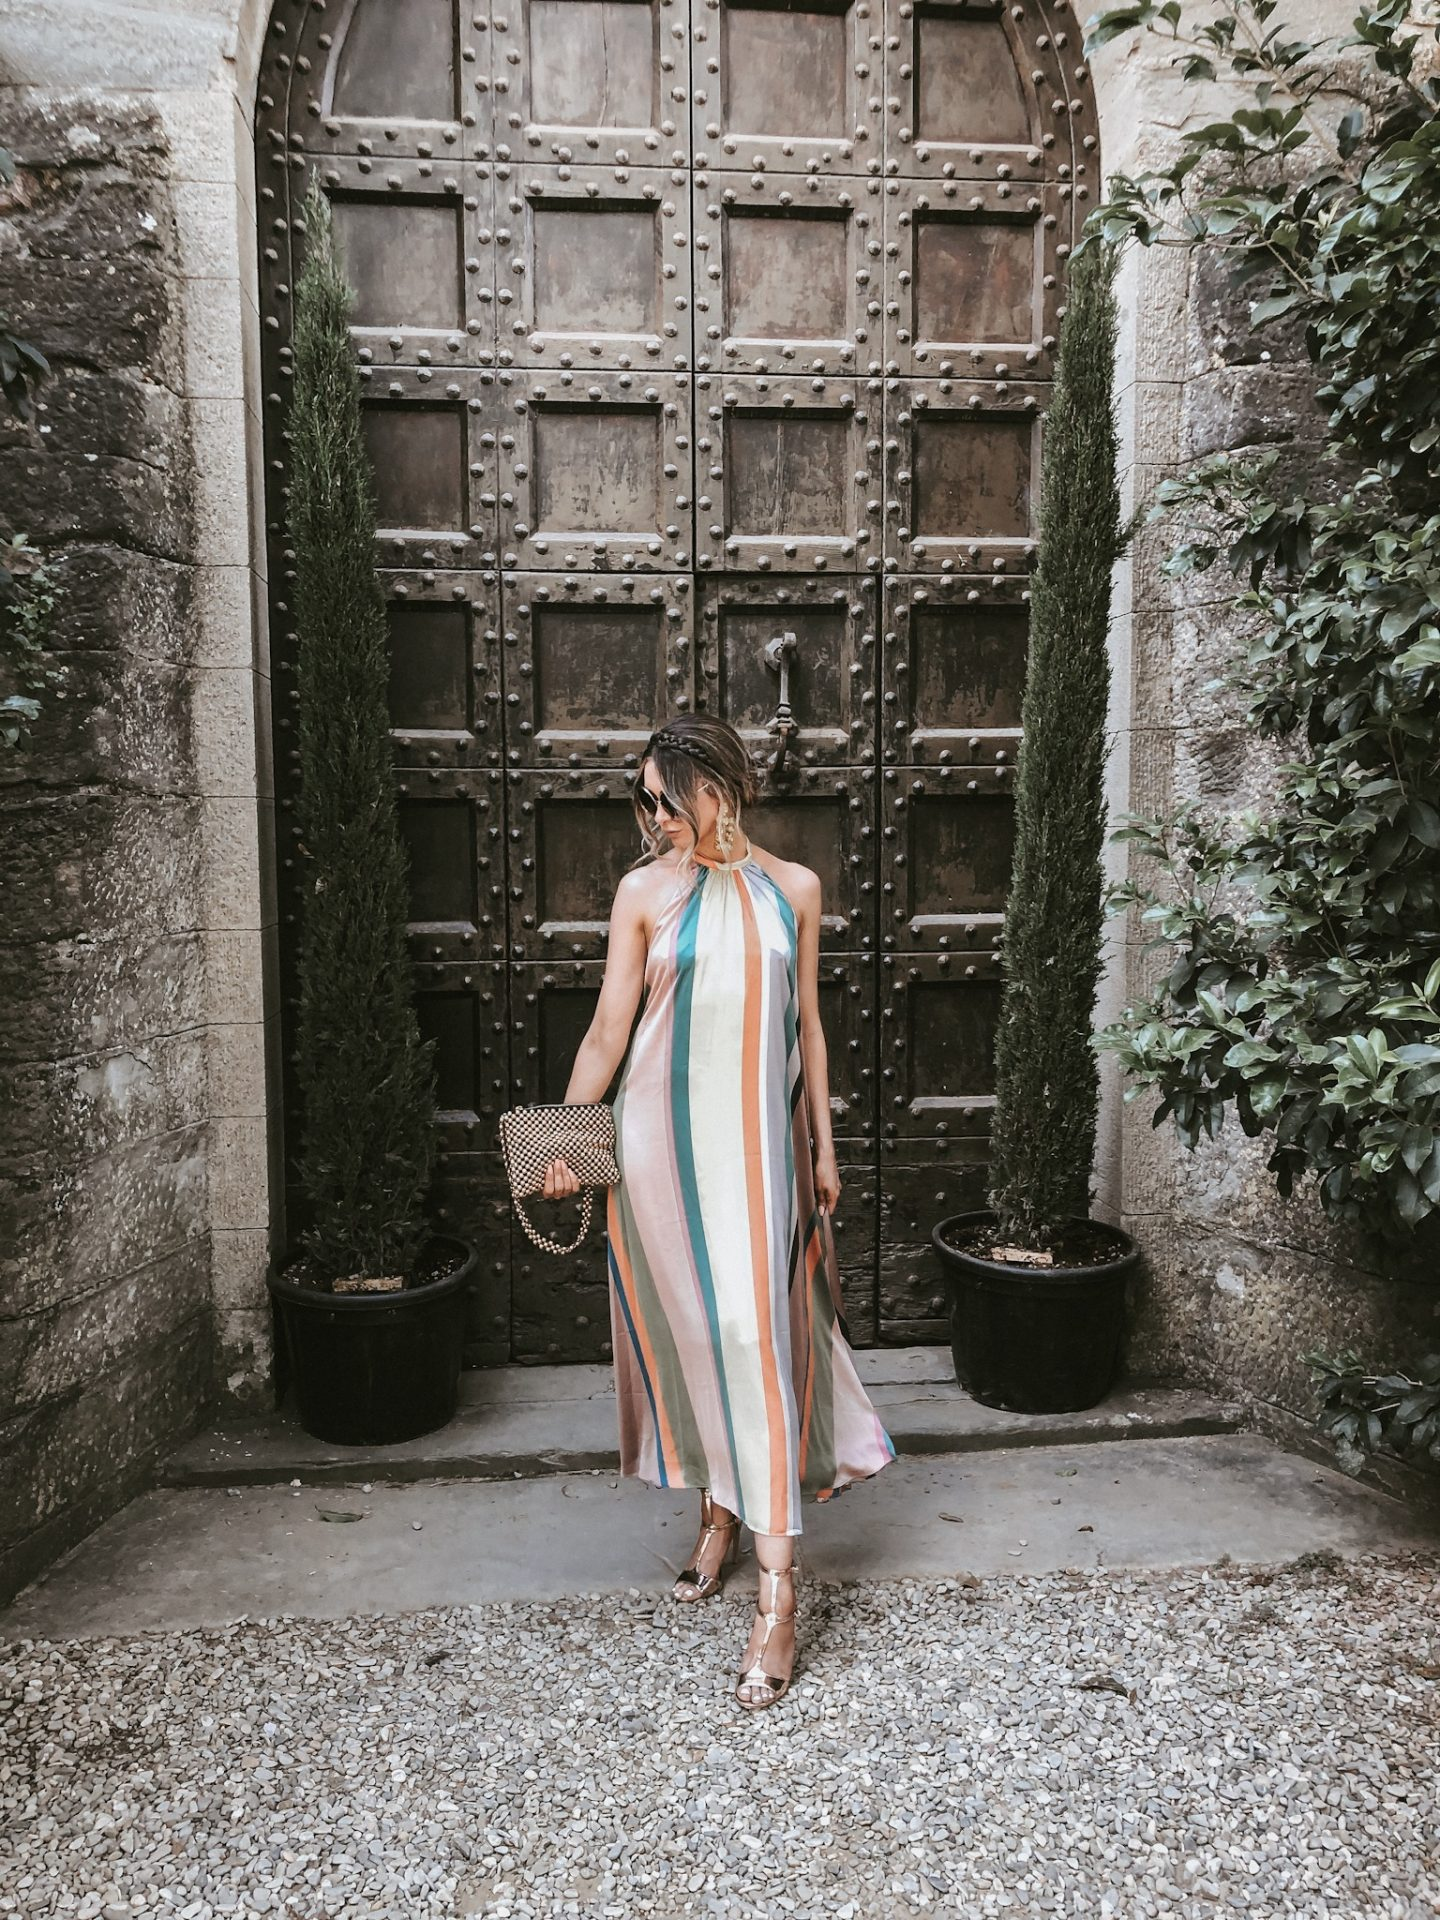 #TLSWEDDING | WHAT TO WEAR TO A DESTINATION WEDDING IN ITALY